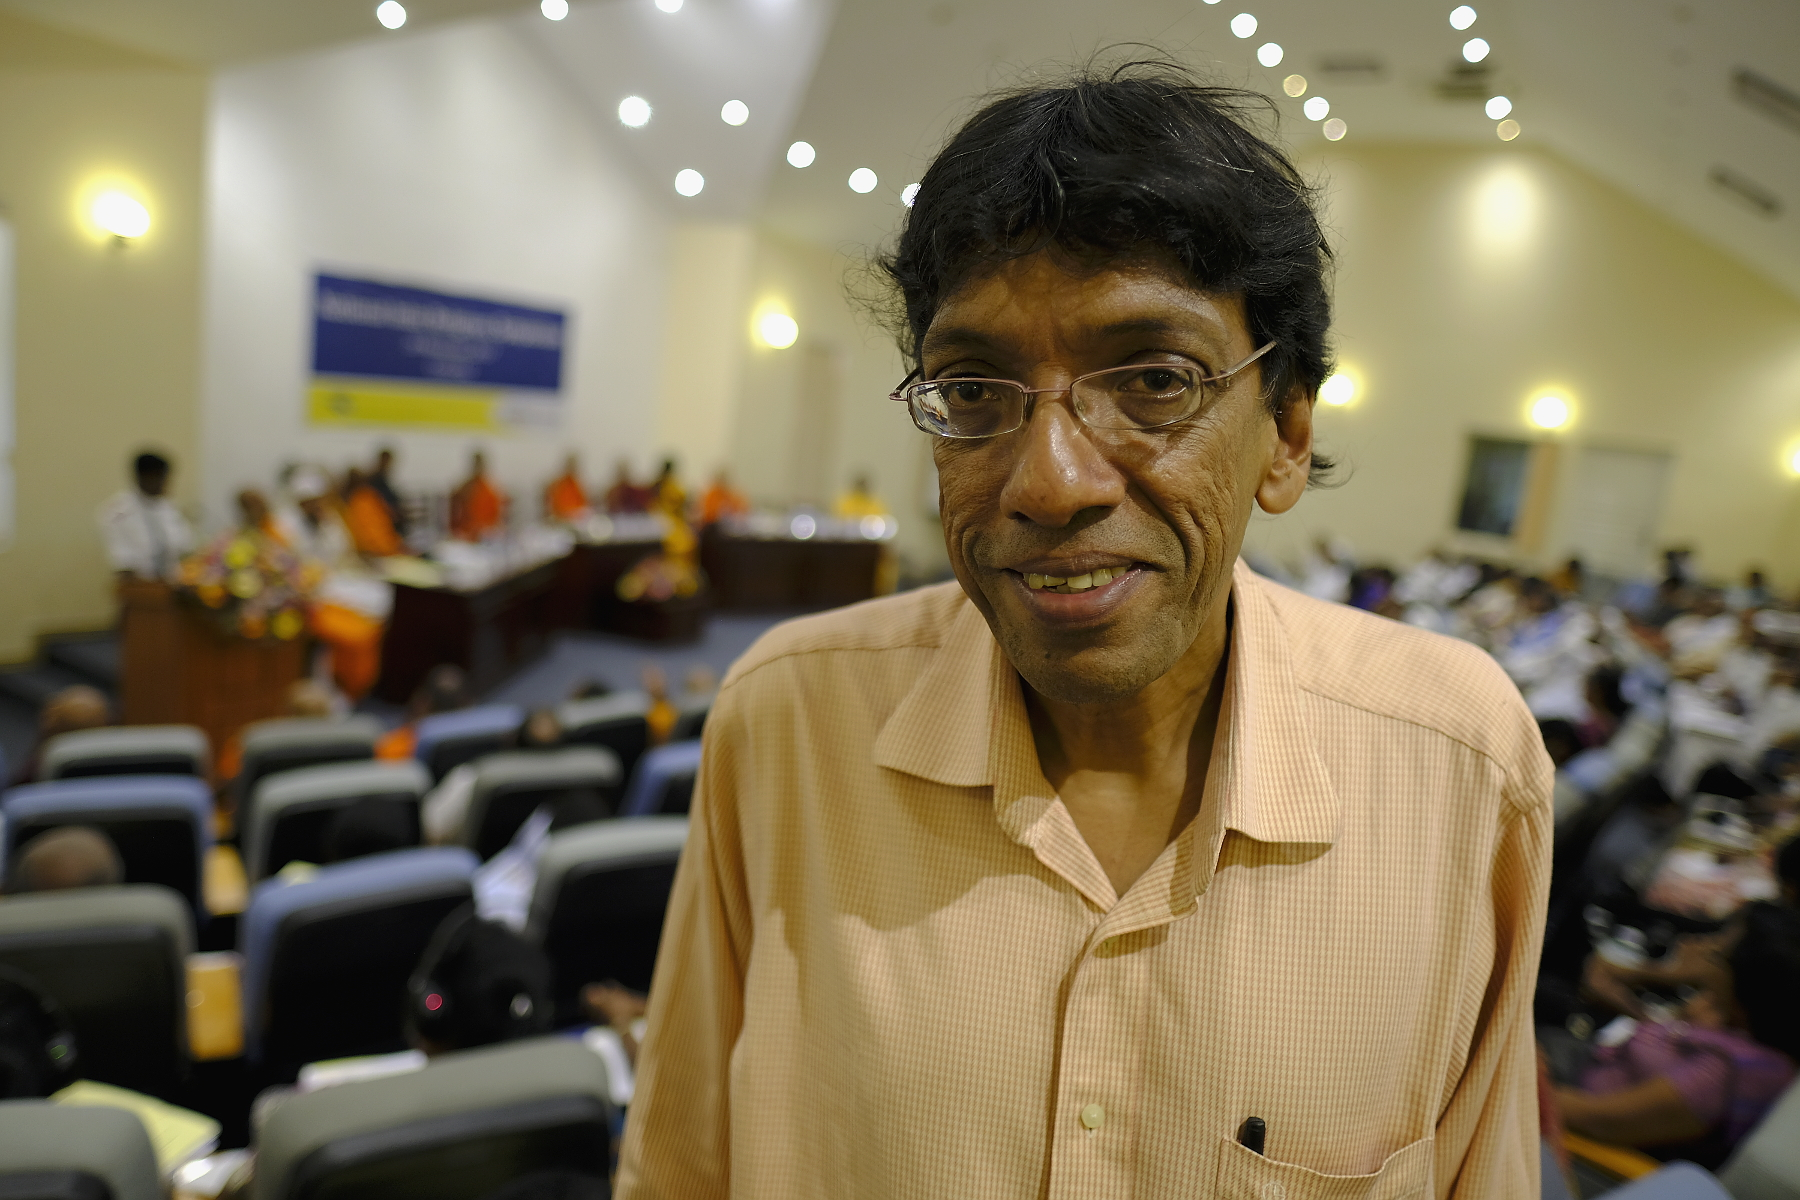 Doktor Jehan Perera leder organisationen National Peace Council i Sri Lanka.